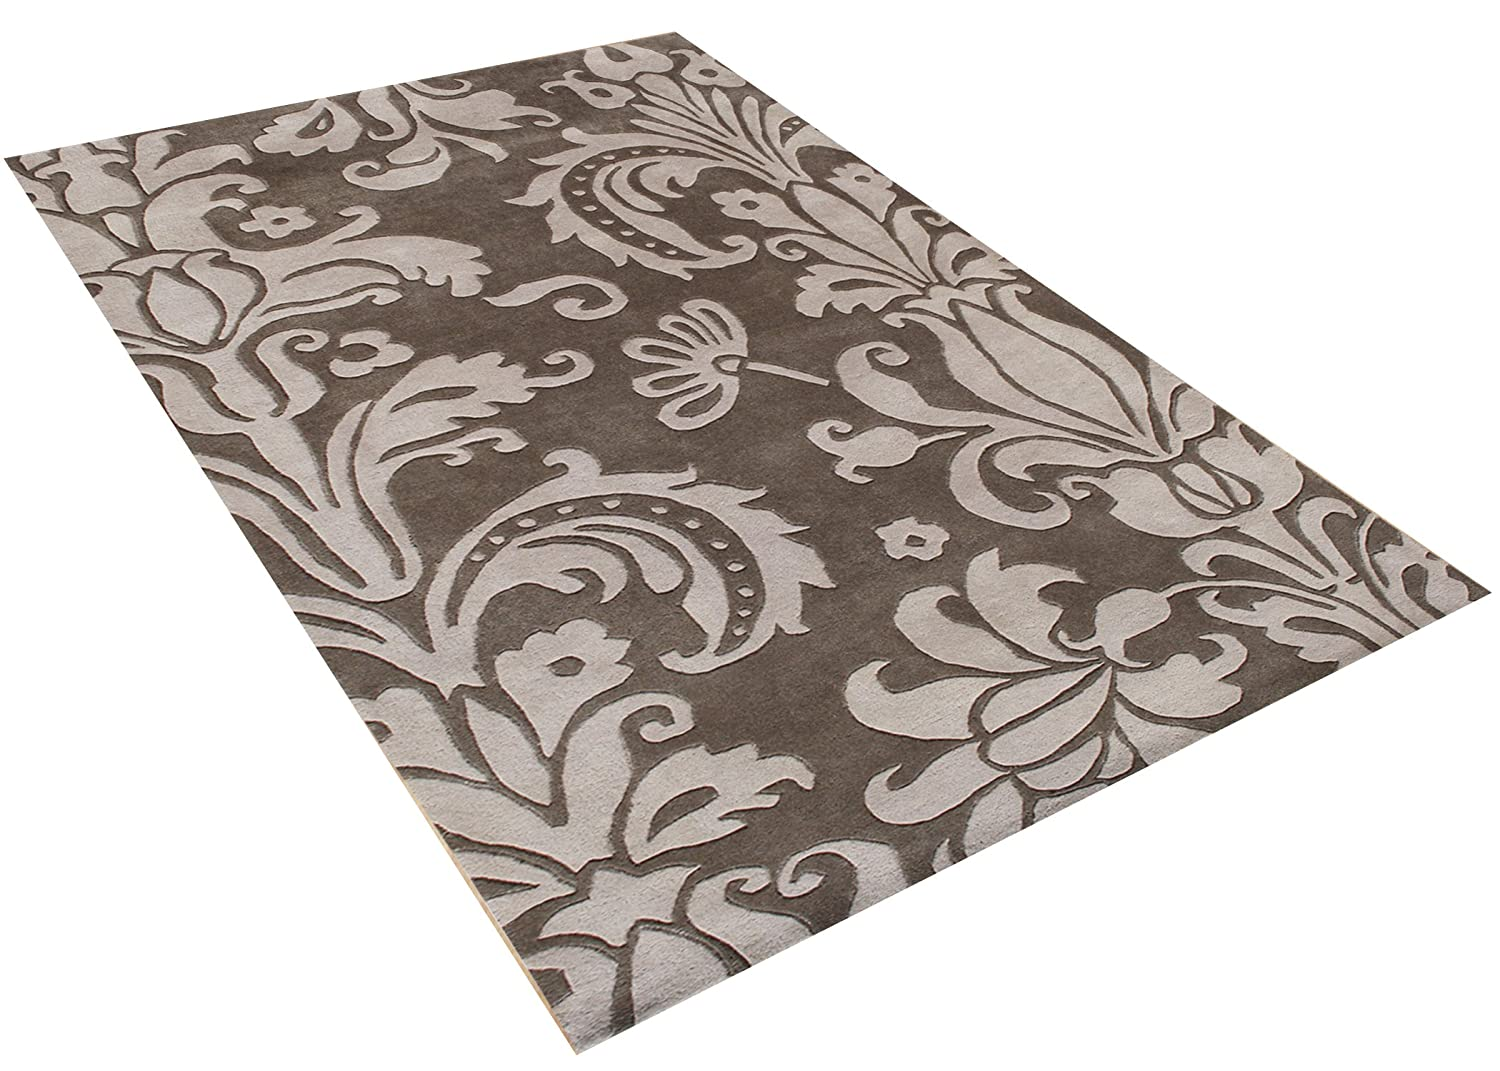 Git Mit Home 18099-30-GMH Area Rugs Grey Blend